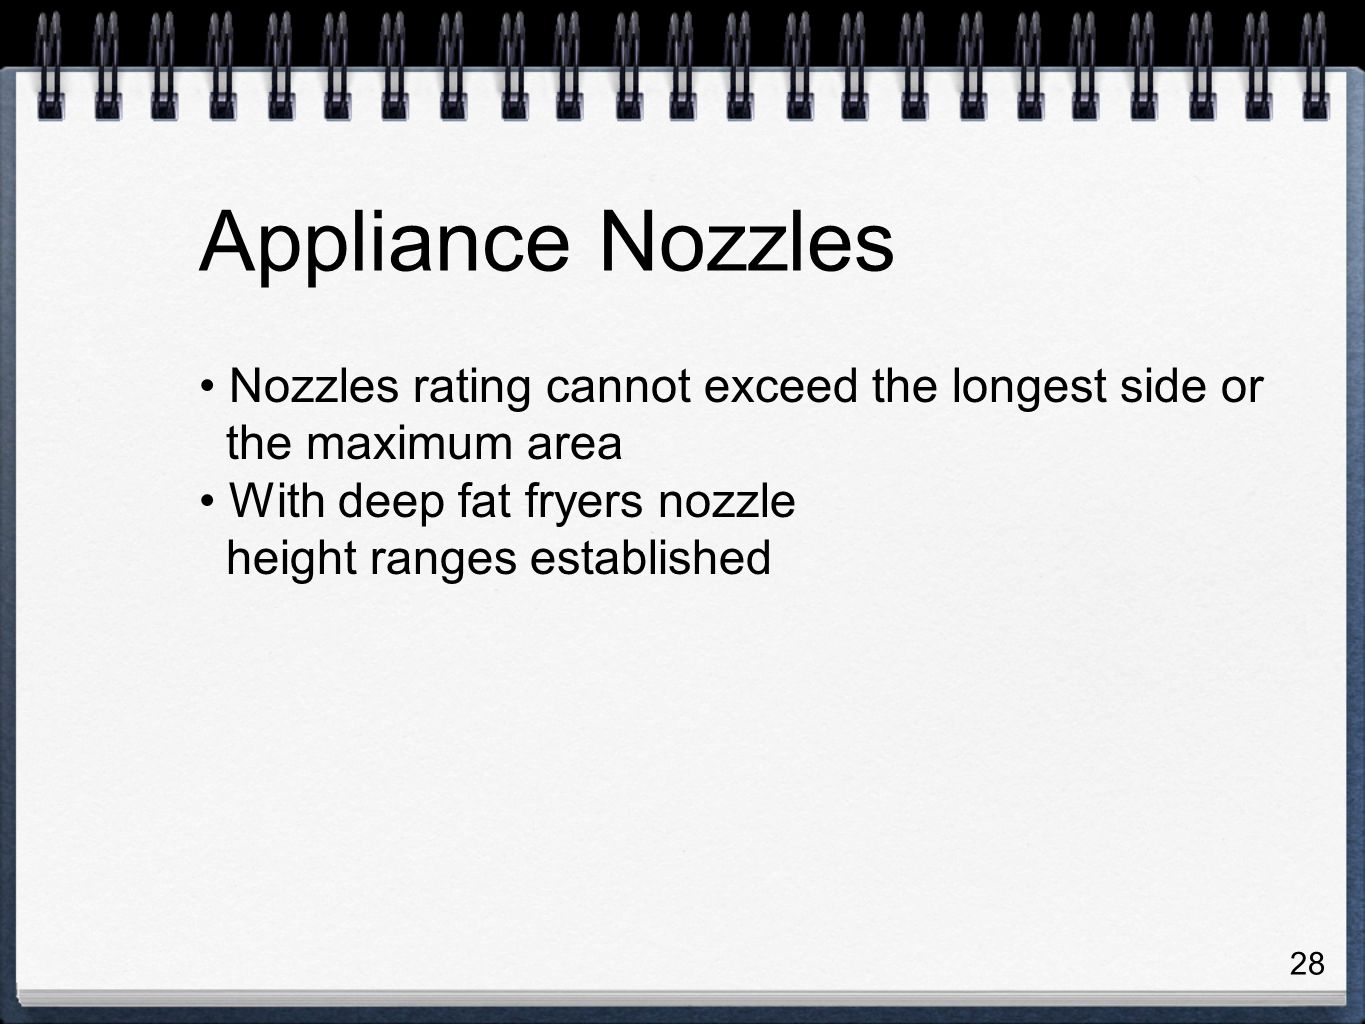 28 Nozzles rating cannot exceed the longest side or the maximum area With deep fat fryers nozzle height ranges established Appliance Nozzles